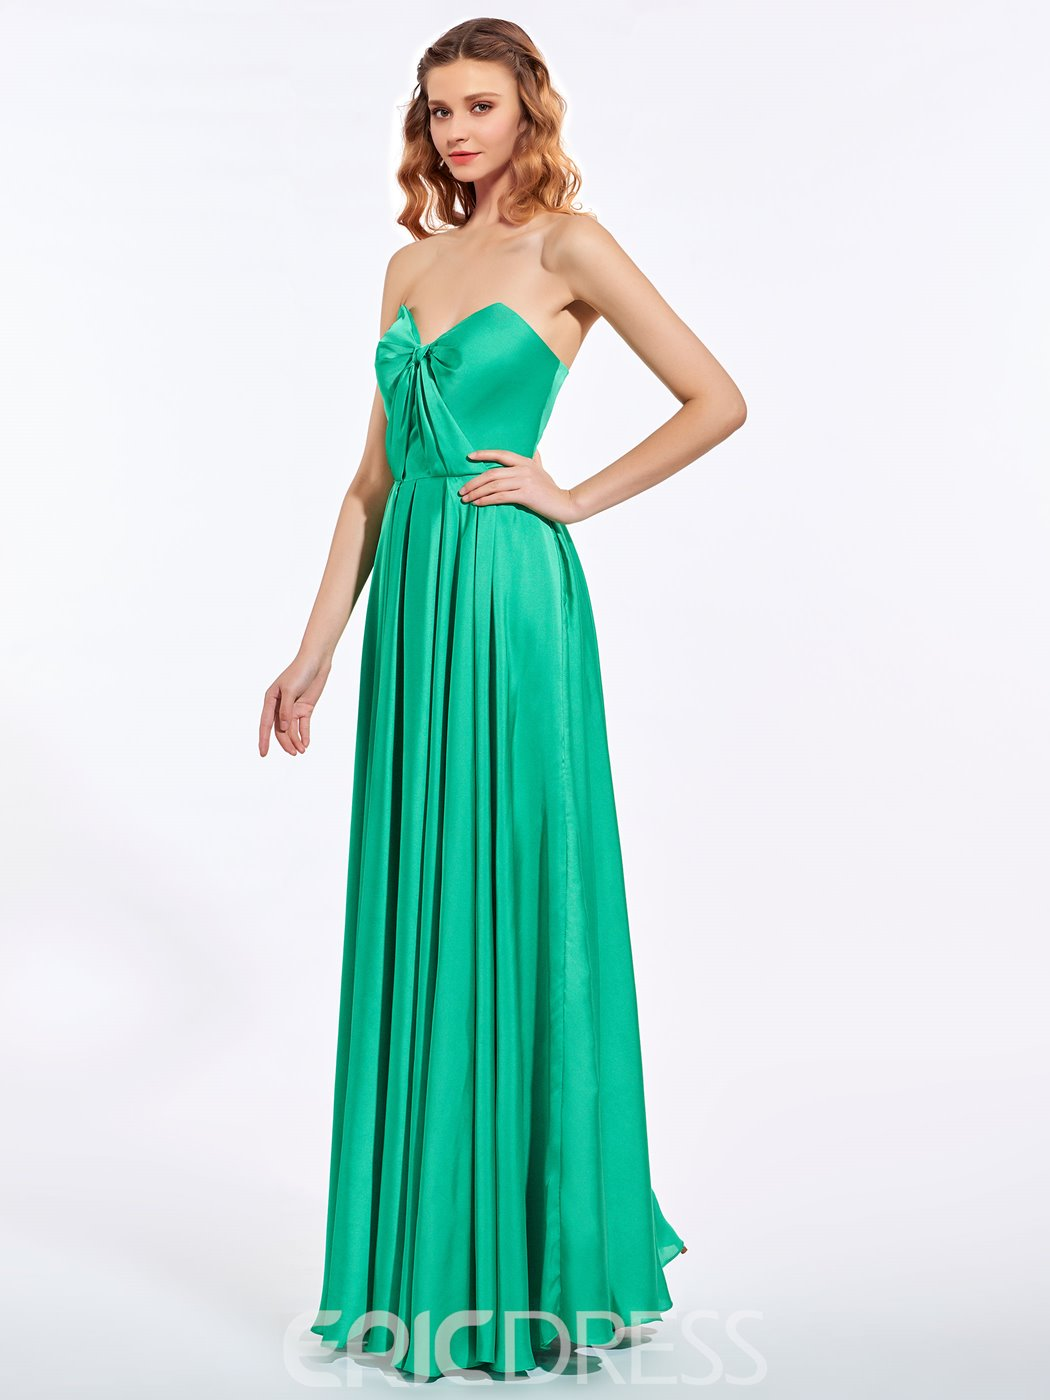 Ericdresss A-Line Sweetheart Draped Floor-Length Prom Dress